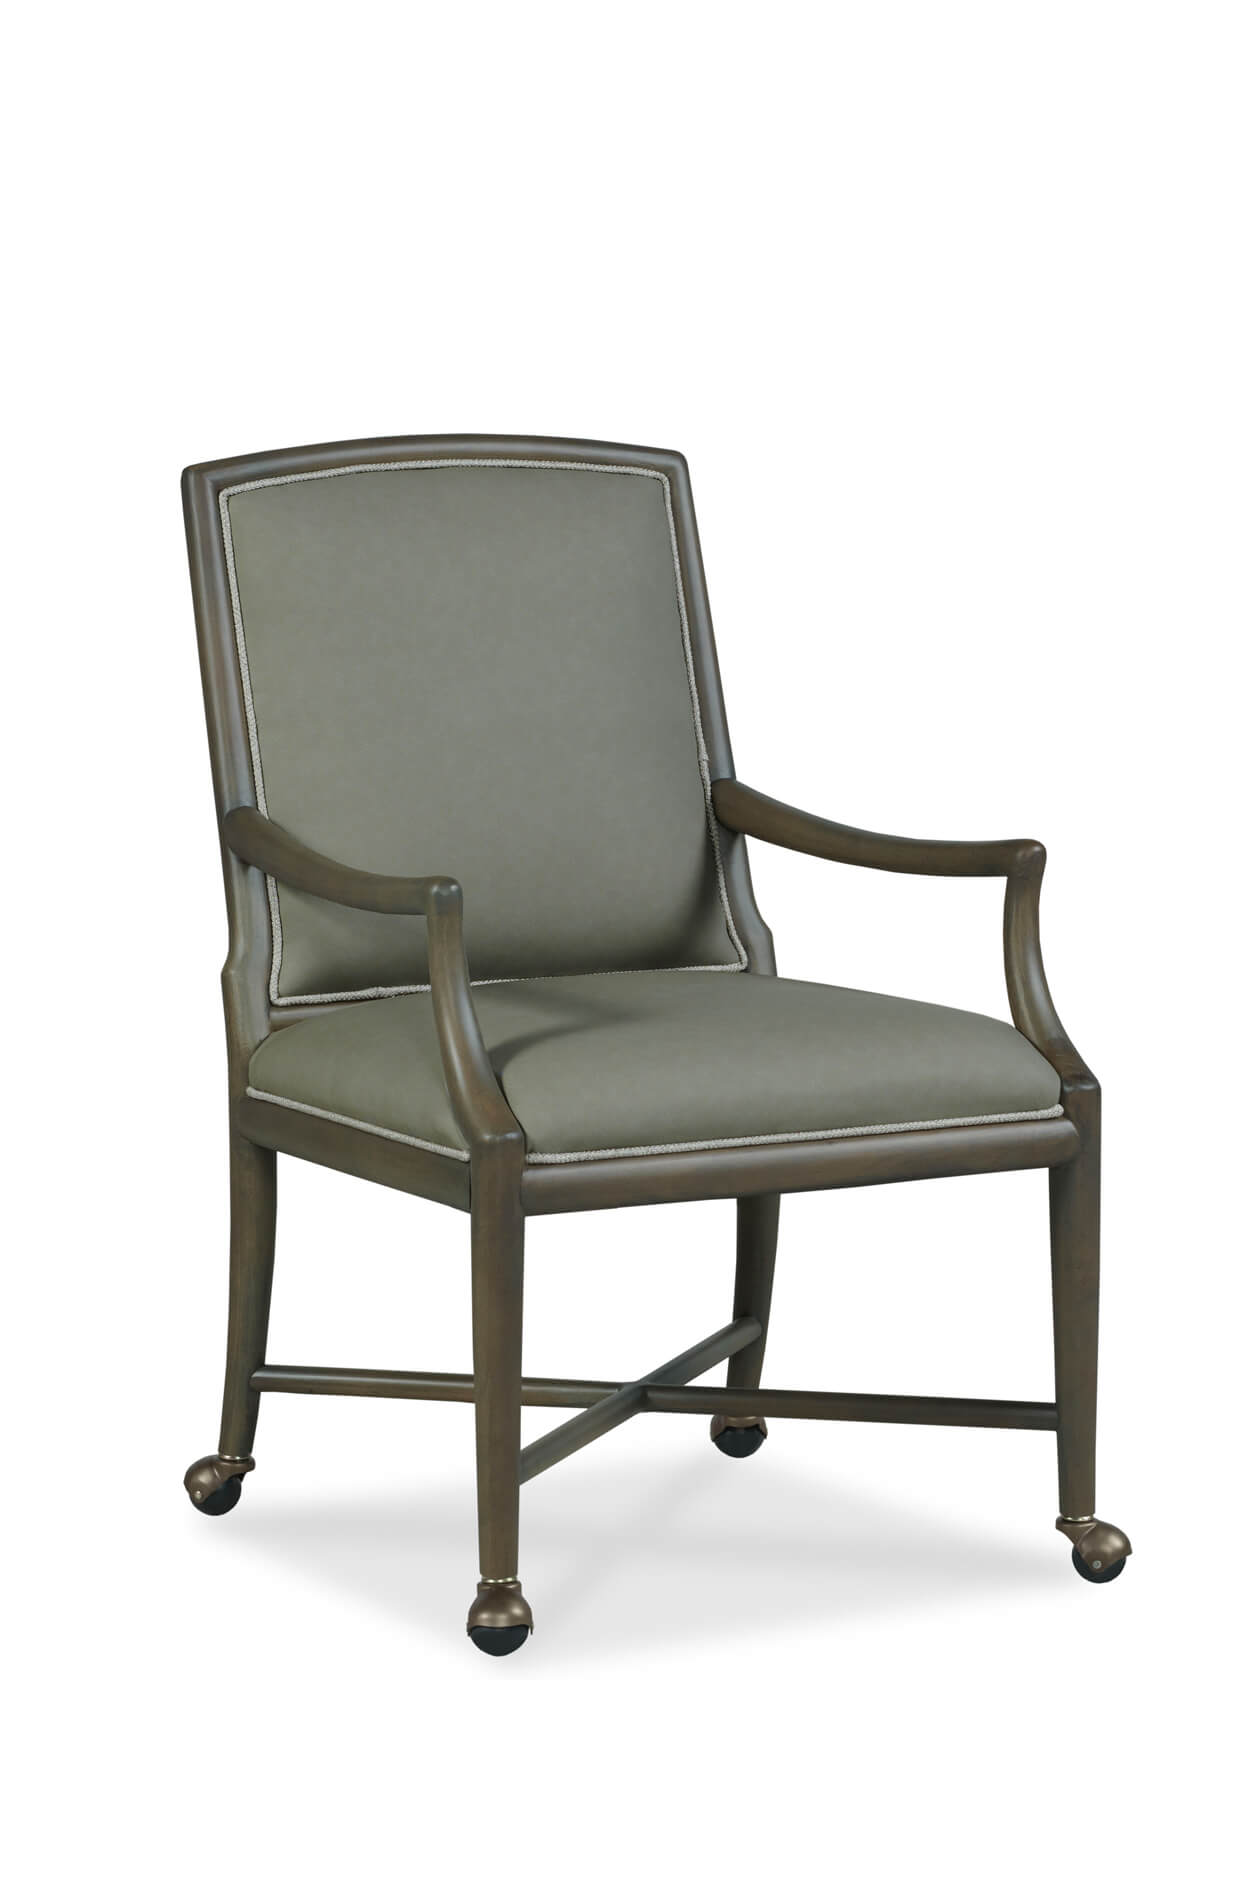 Fairfield's Clayton Upholstered Dining Arm Chair with Casters